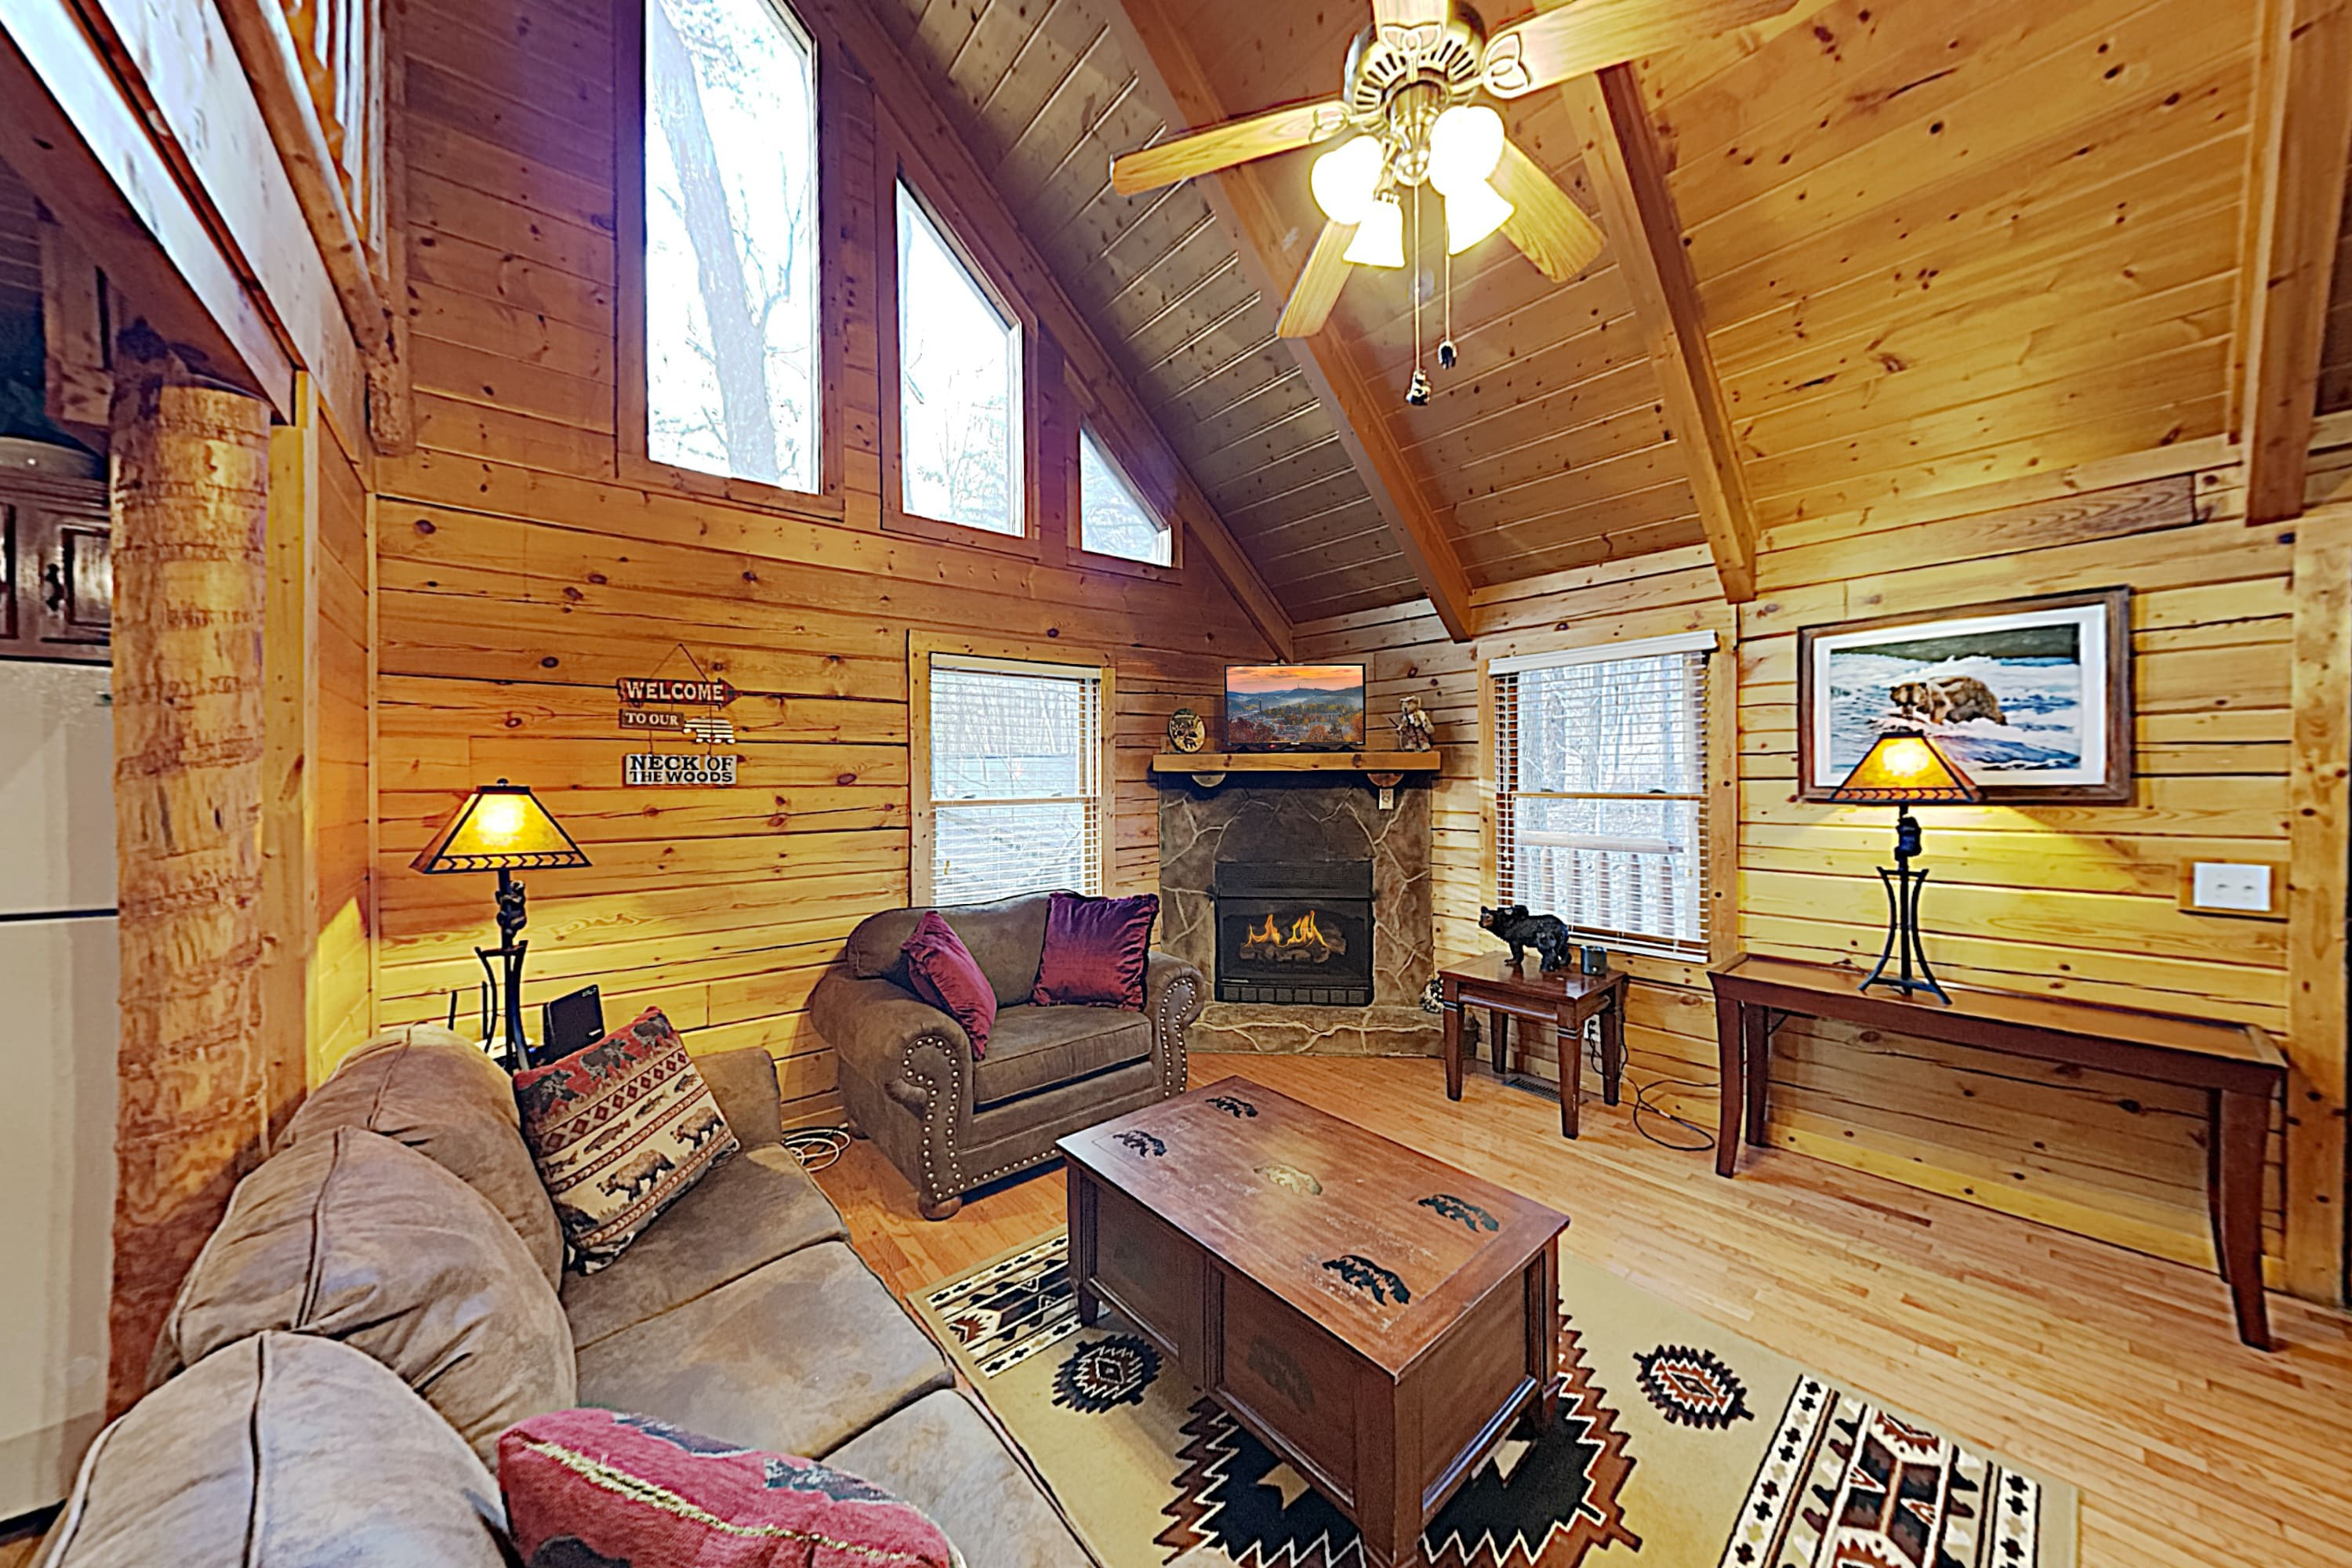 Welcome to Sevierville! Relax in style in the warm-hued living room, outfitted with a flat screen TV and fireplace.